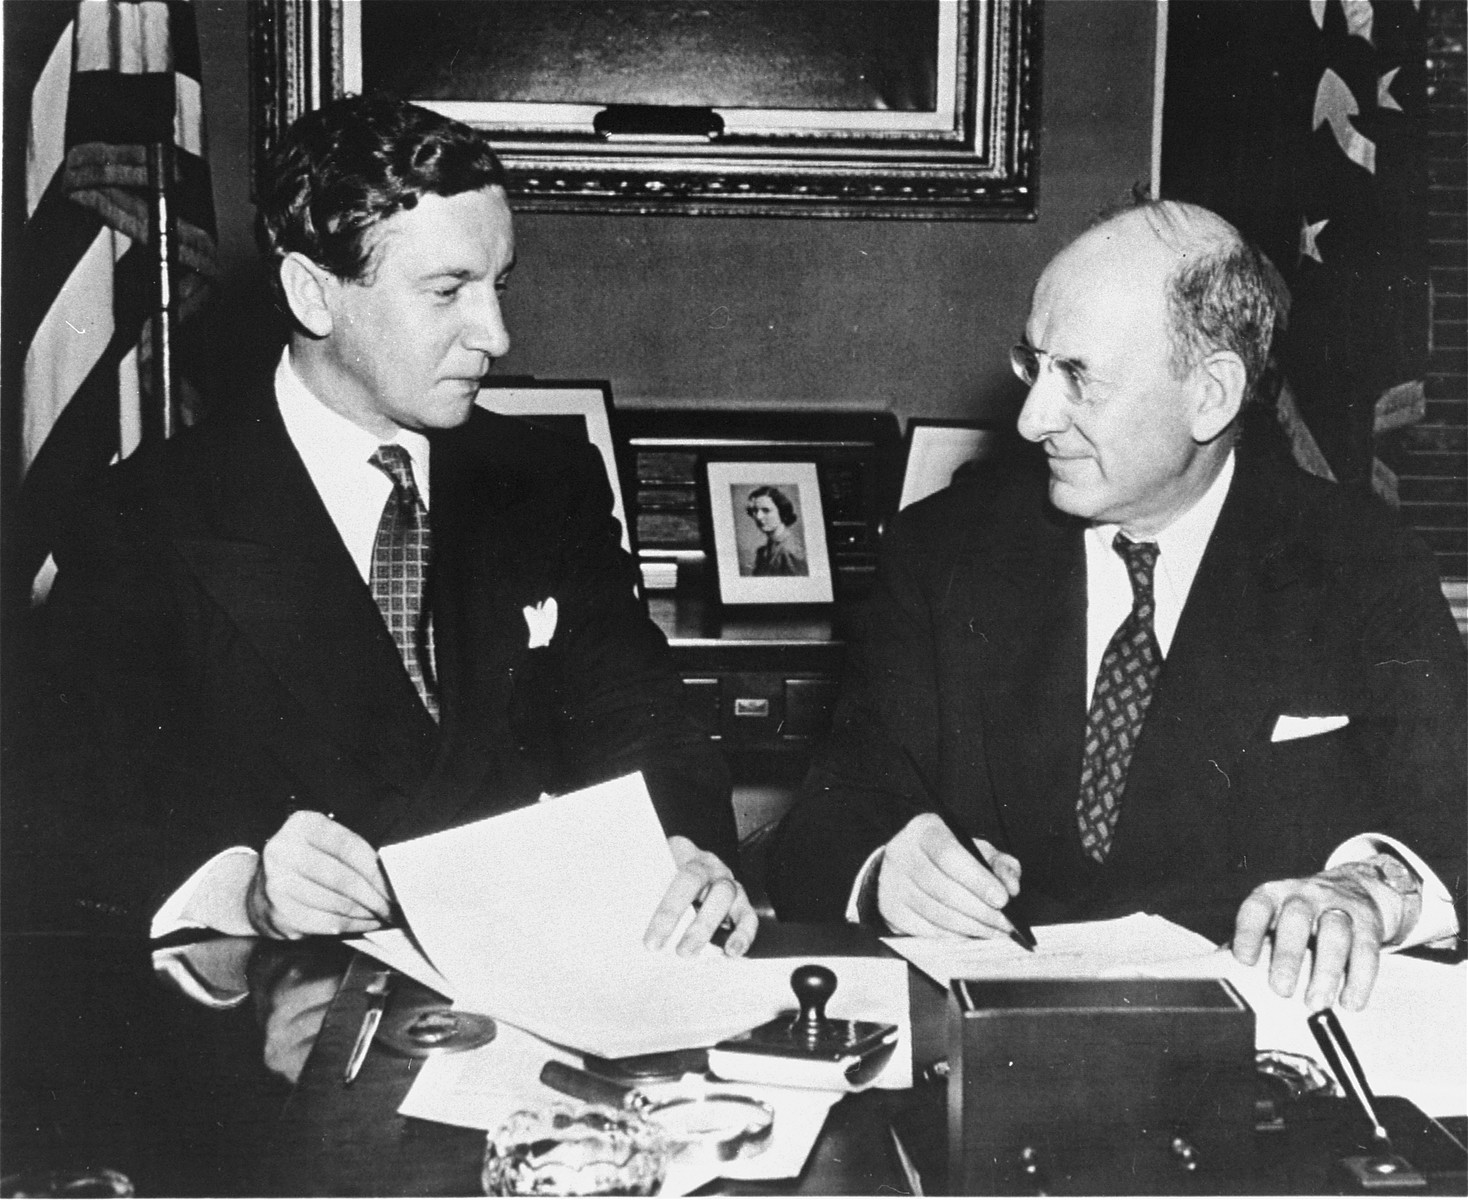 """Henry Morgenthau Jr. (1891-1967). Secretary of the Treasury under Franklin Roosevelt, and highest ranking Jew in the administration.     In January 1944, after receiving a report prepared by his subordinates on """"the acquiescence of this government in the murder of the Jews,"""" Morgenthau wrote a personal report to the President which led to the establishment of the War Refugee Board.   After the war he became Chairman of the UJA (1946-50) and became involved with many Zionist causes."""